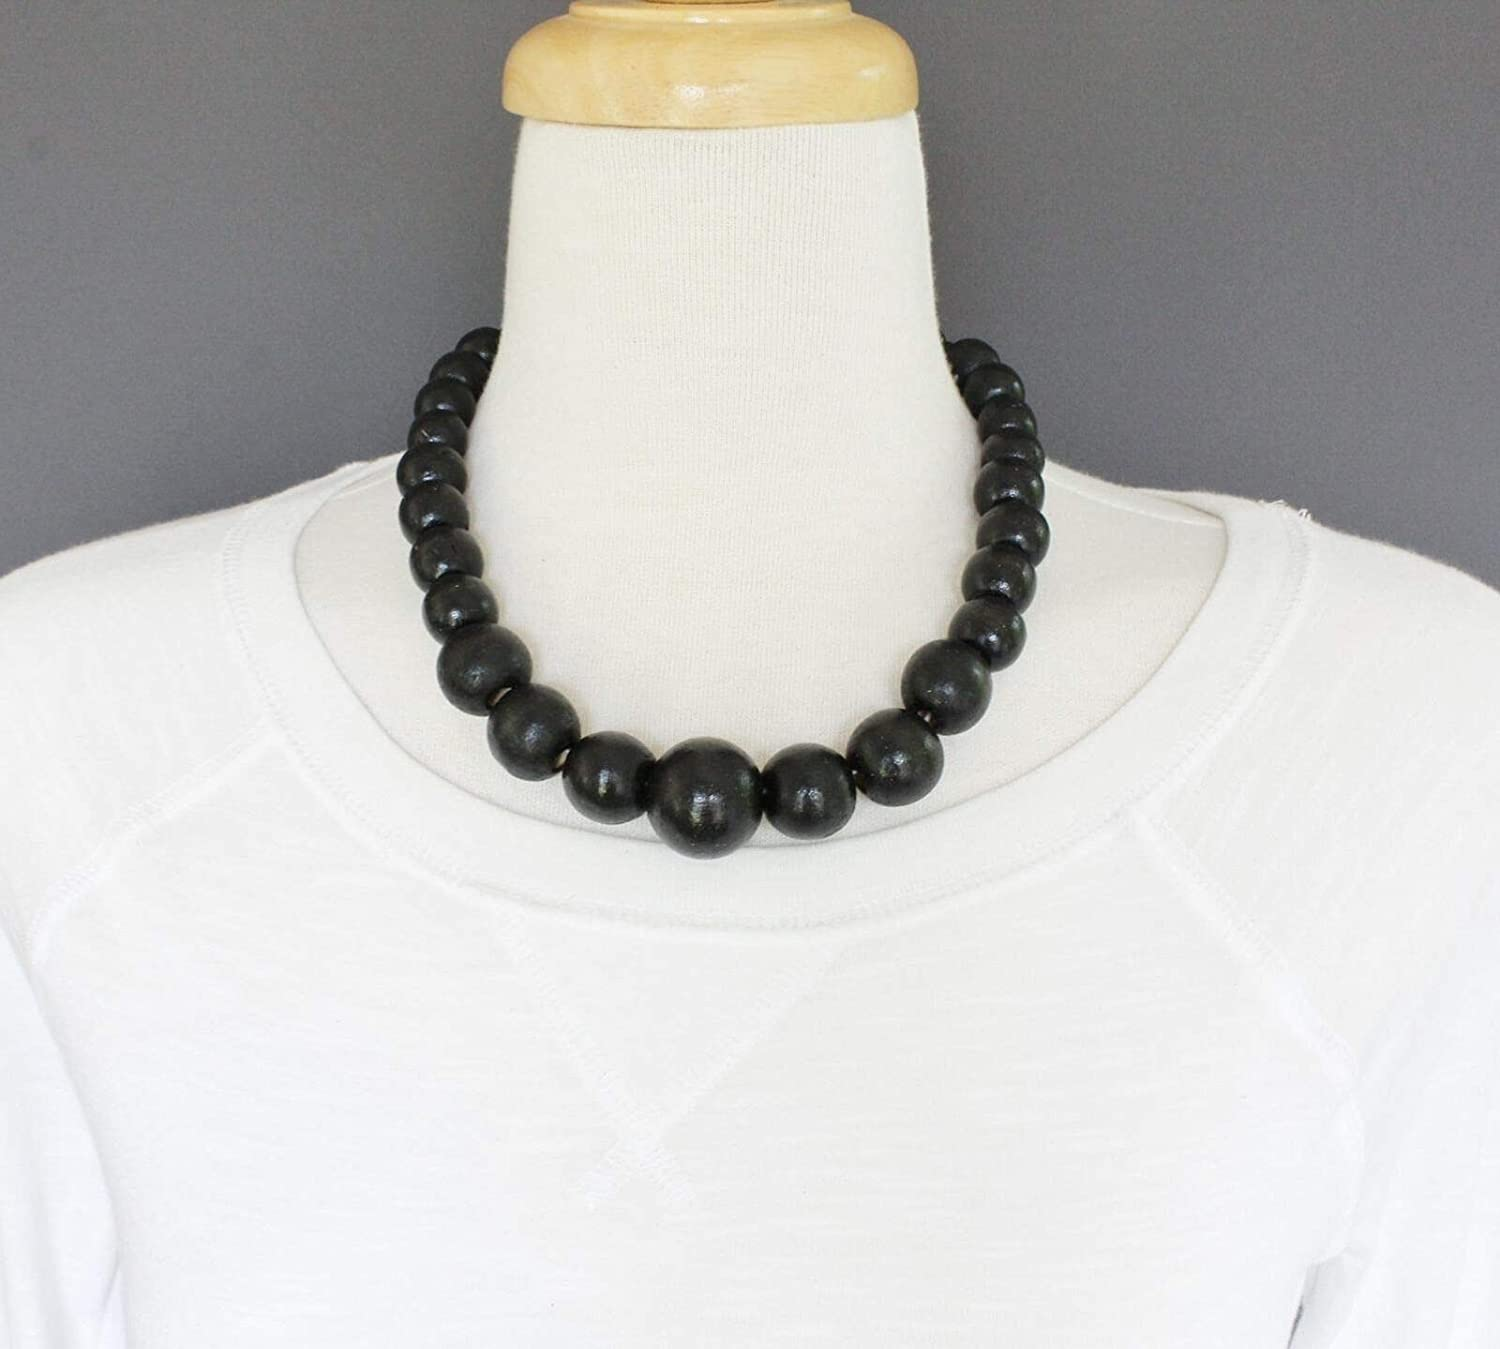 Wooden necklace for women trendy long chunky necklaces